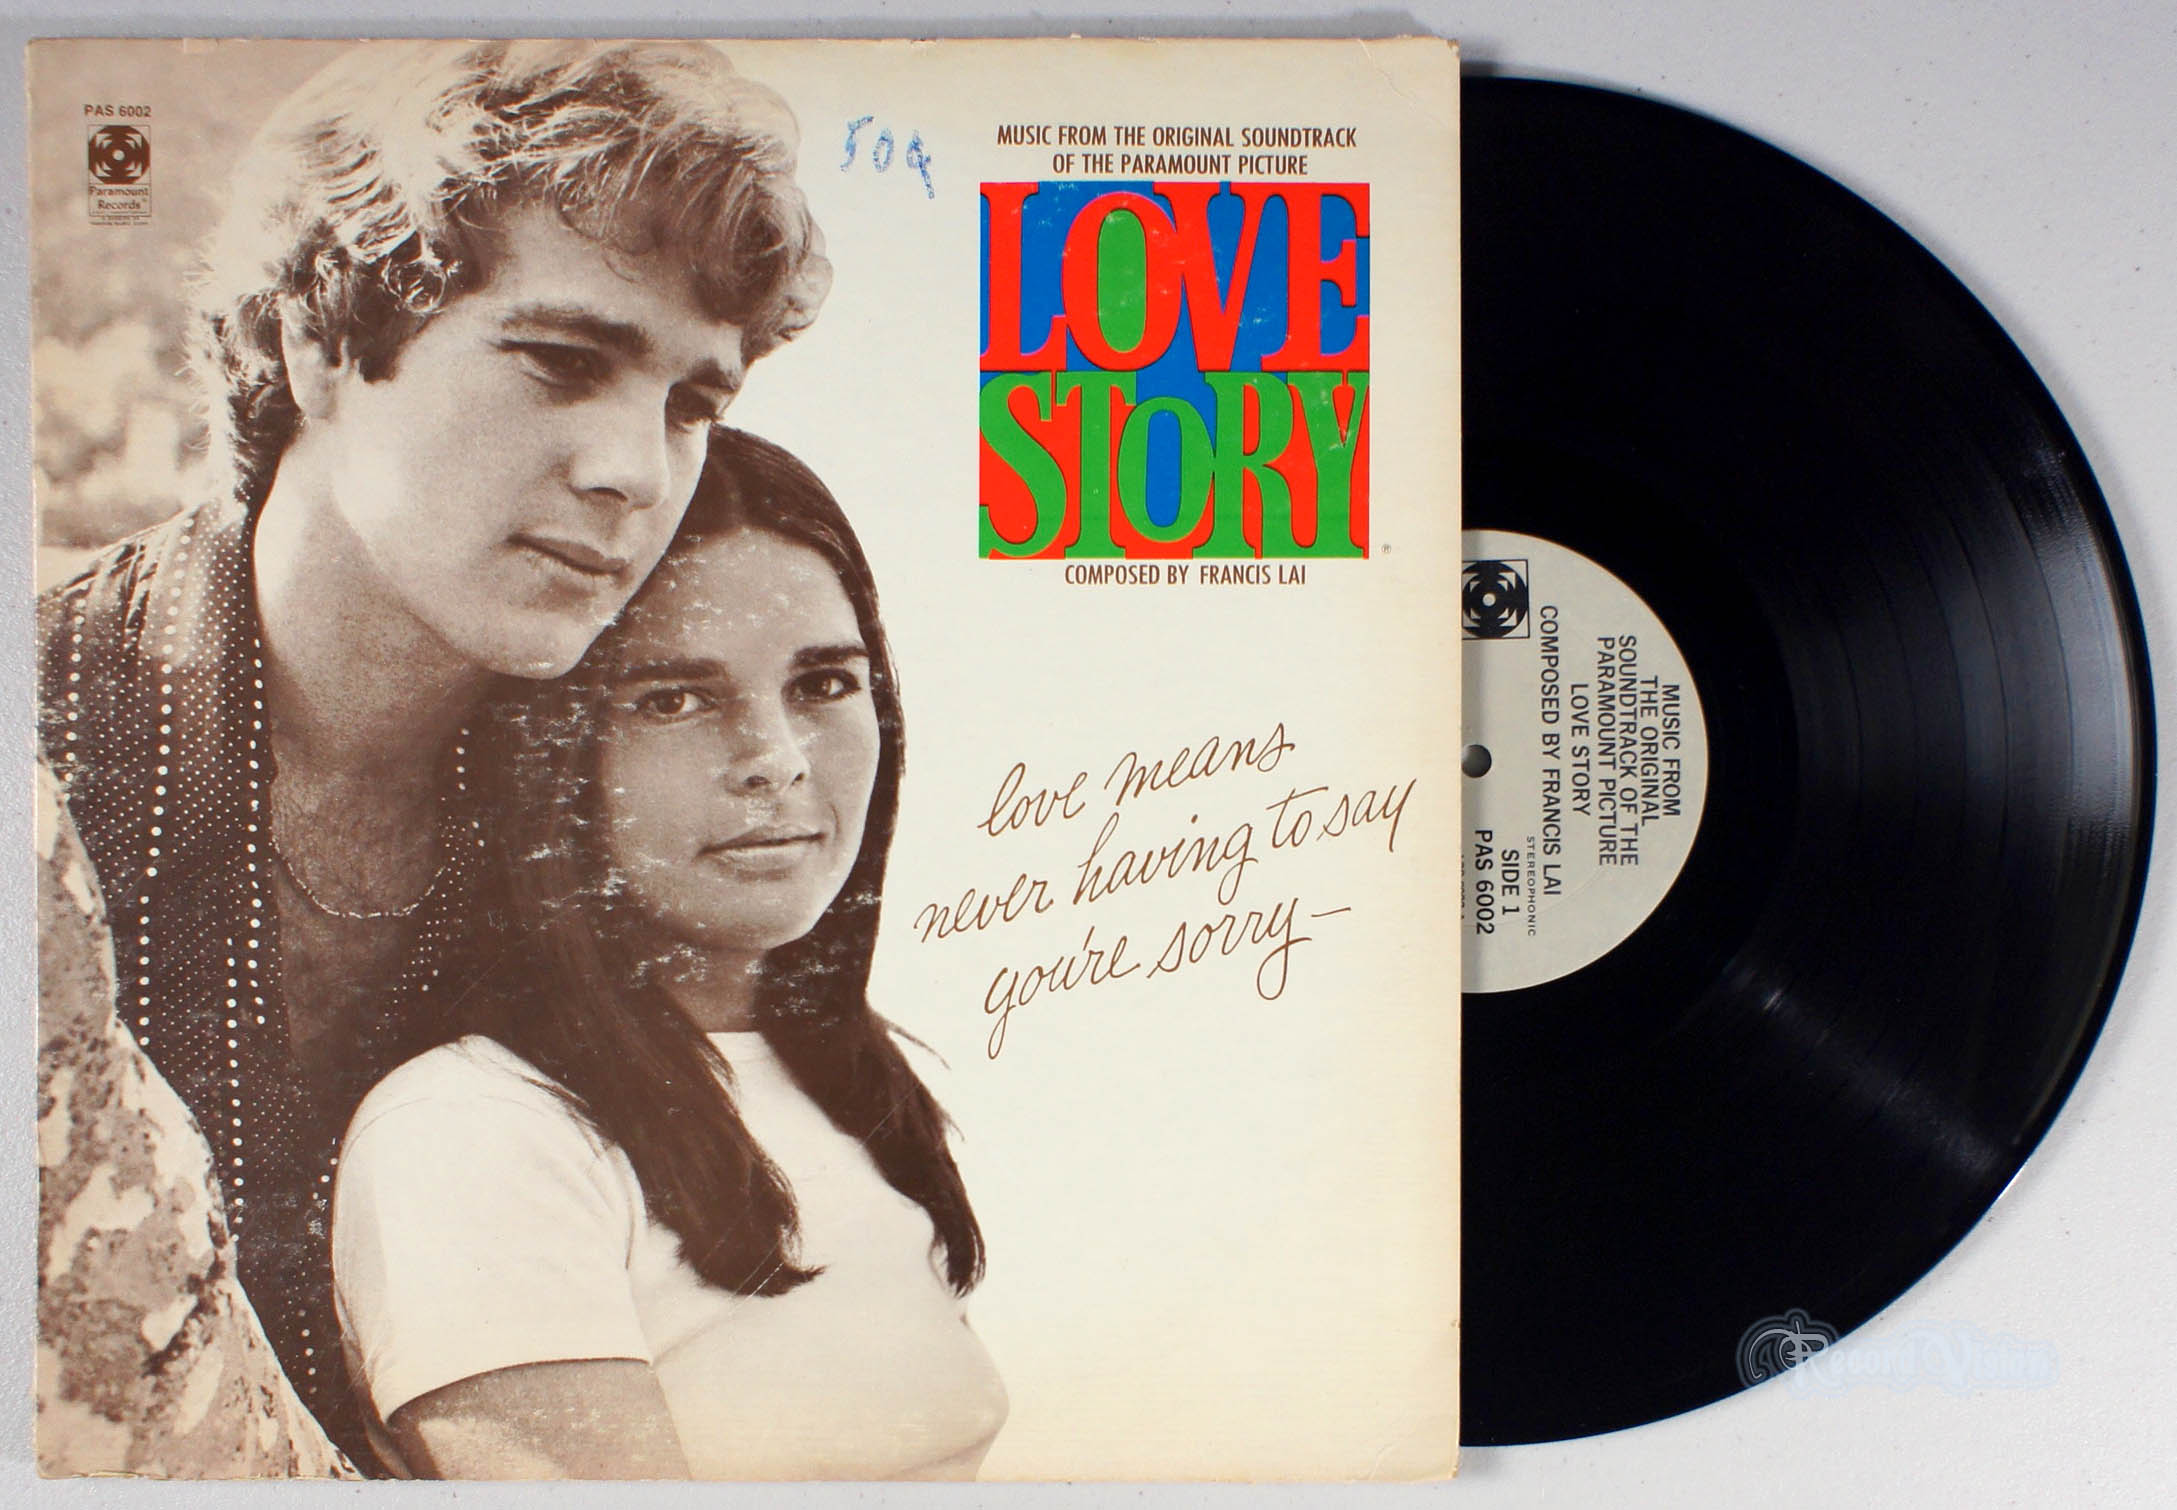 ASSORTED (SOUNDTRACK) - Love Story - LP